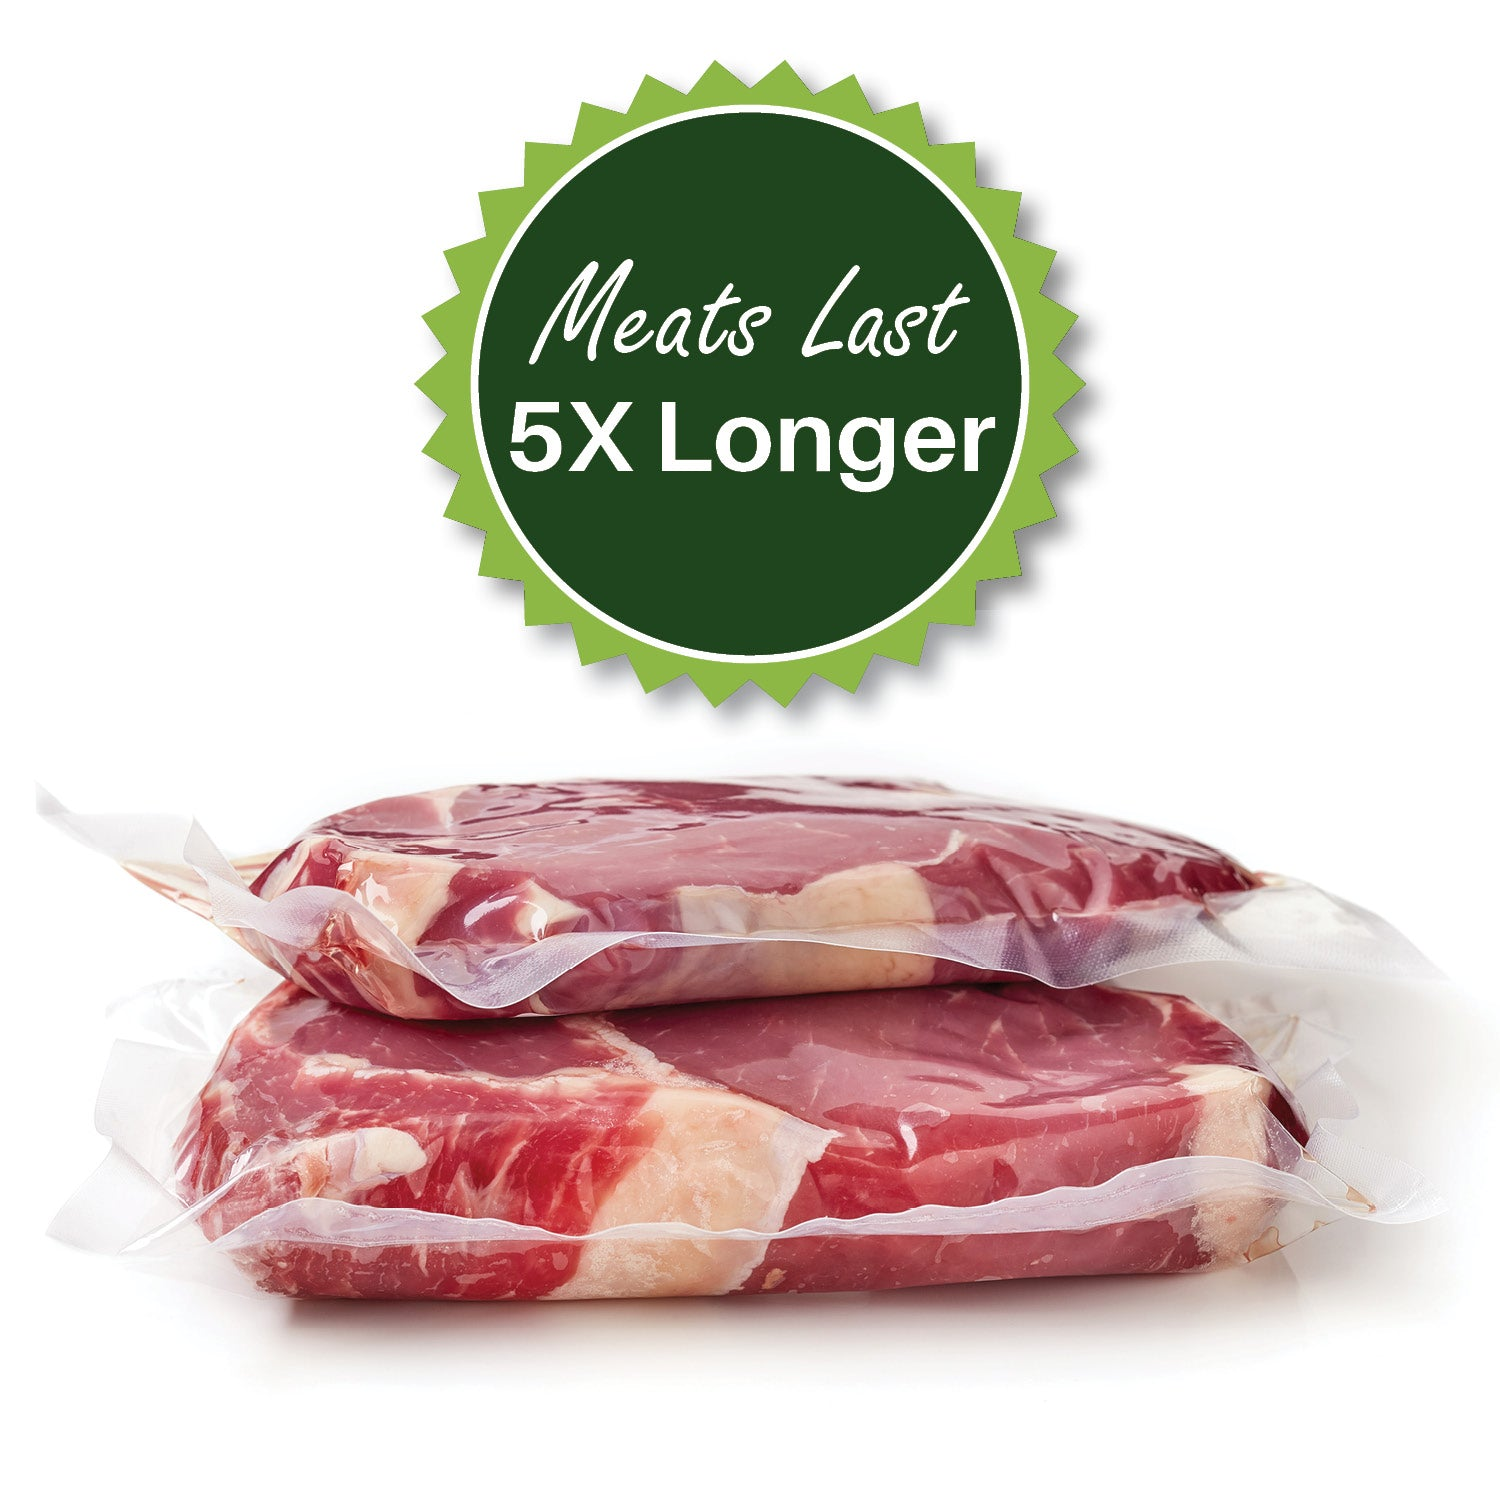 Meats Last 5X Longer with FoodVacBags